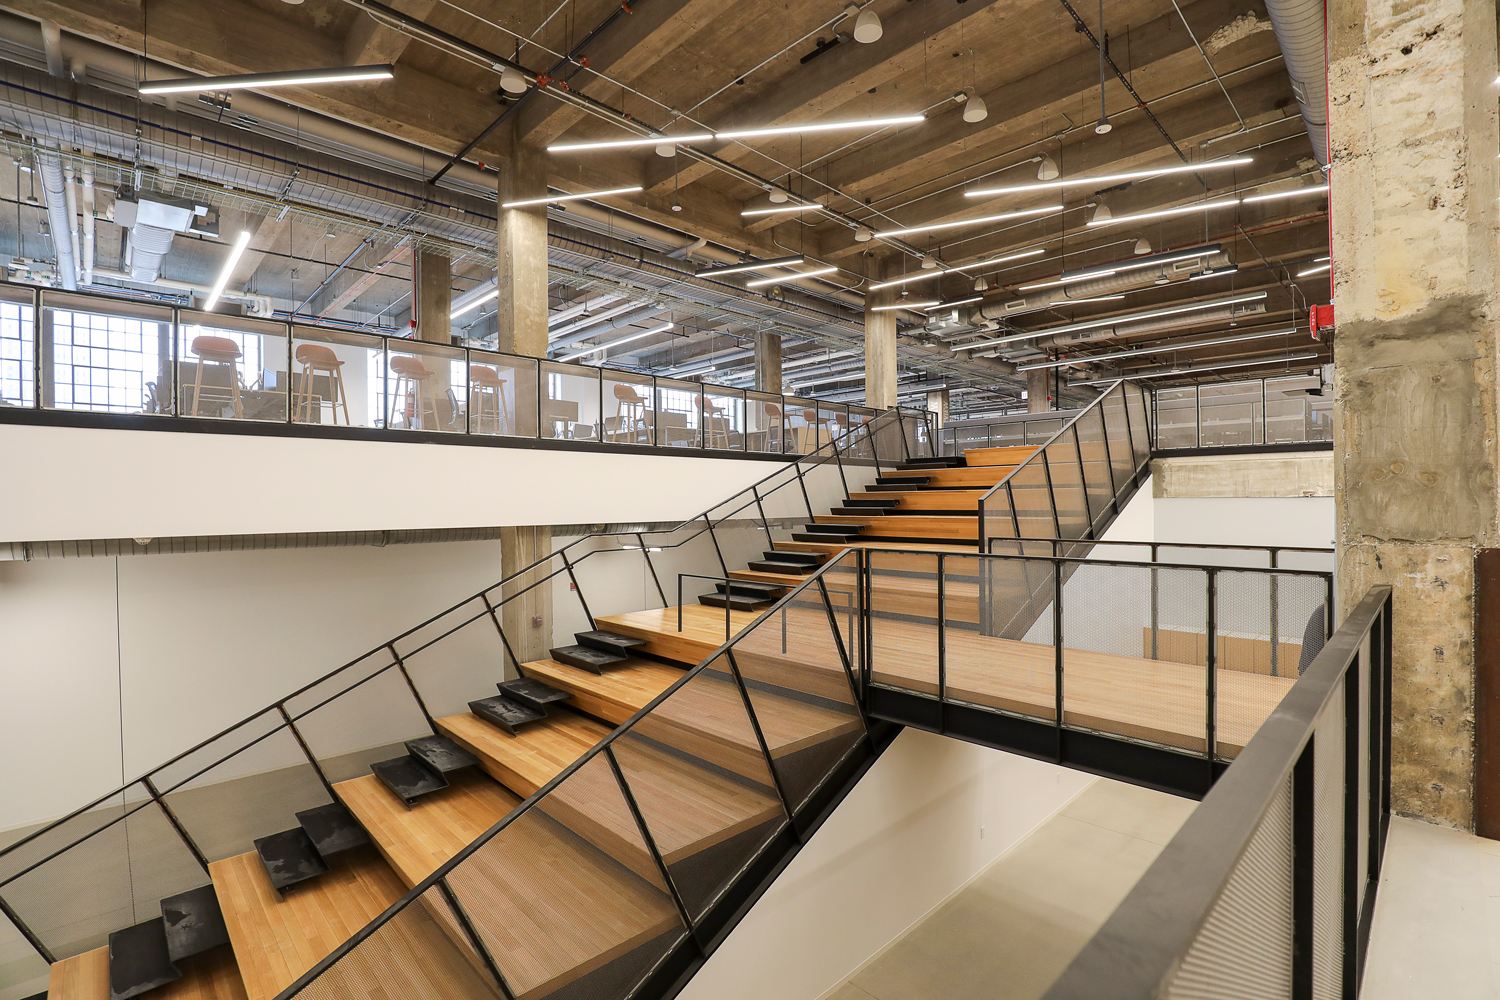 Skender Completes 200,000-SF Interior Construction on Walgreens Technology Center of Excellence in Old Post Office